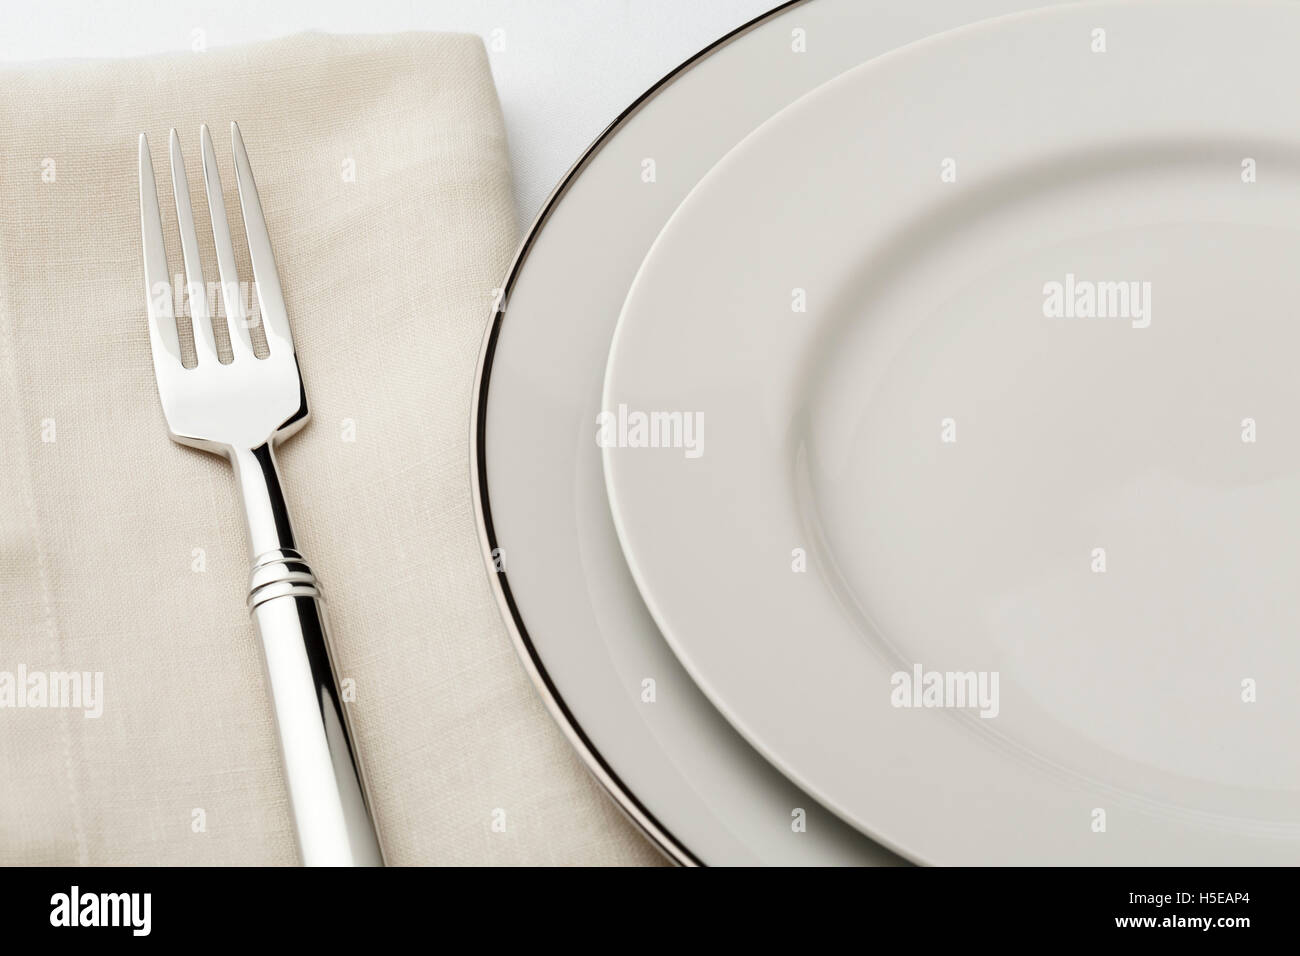 Fine dining table setting place setting with high quality classic style white china dishes linen napkin and silverware fork : fine dining table setting - pezcame.com